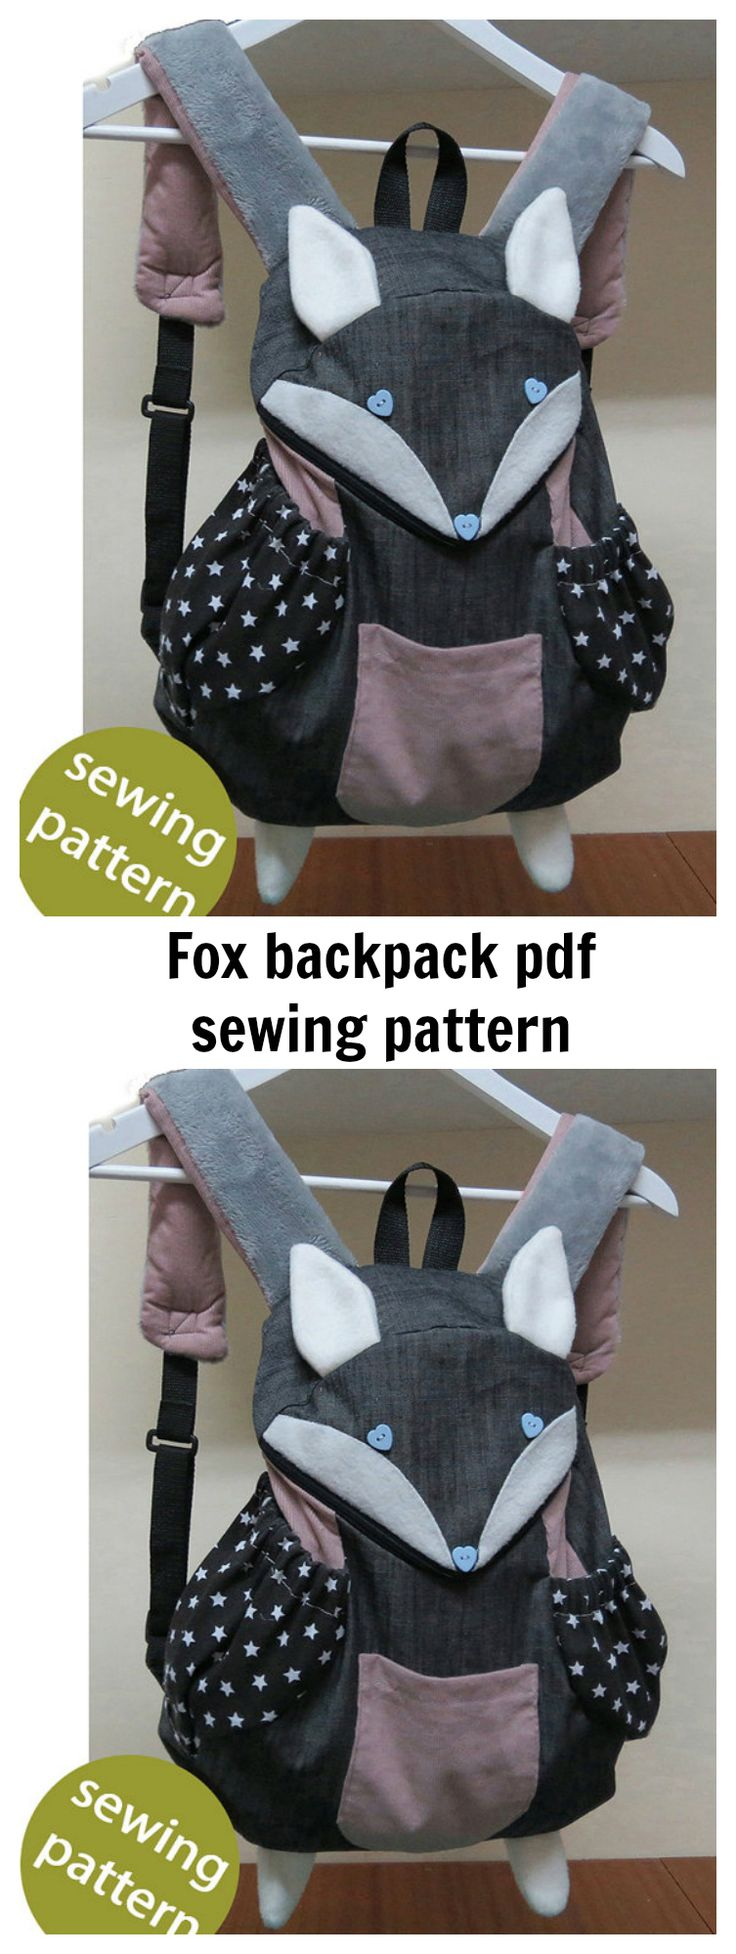 Fox backpack pdf sewing pattern. This trendy fox backpack is awesome for kids.